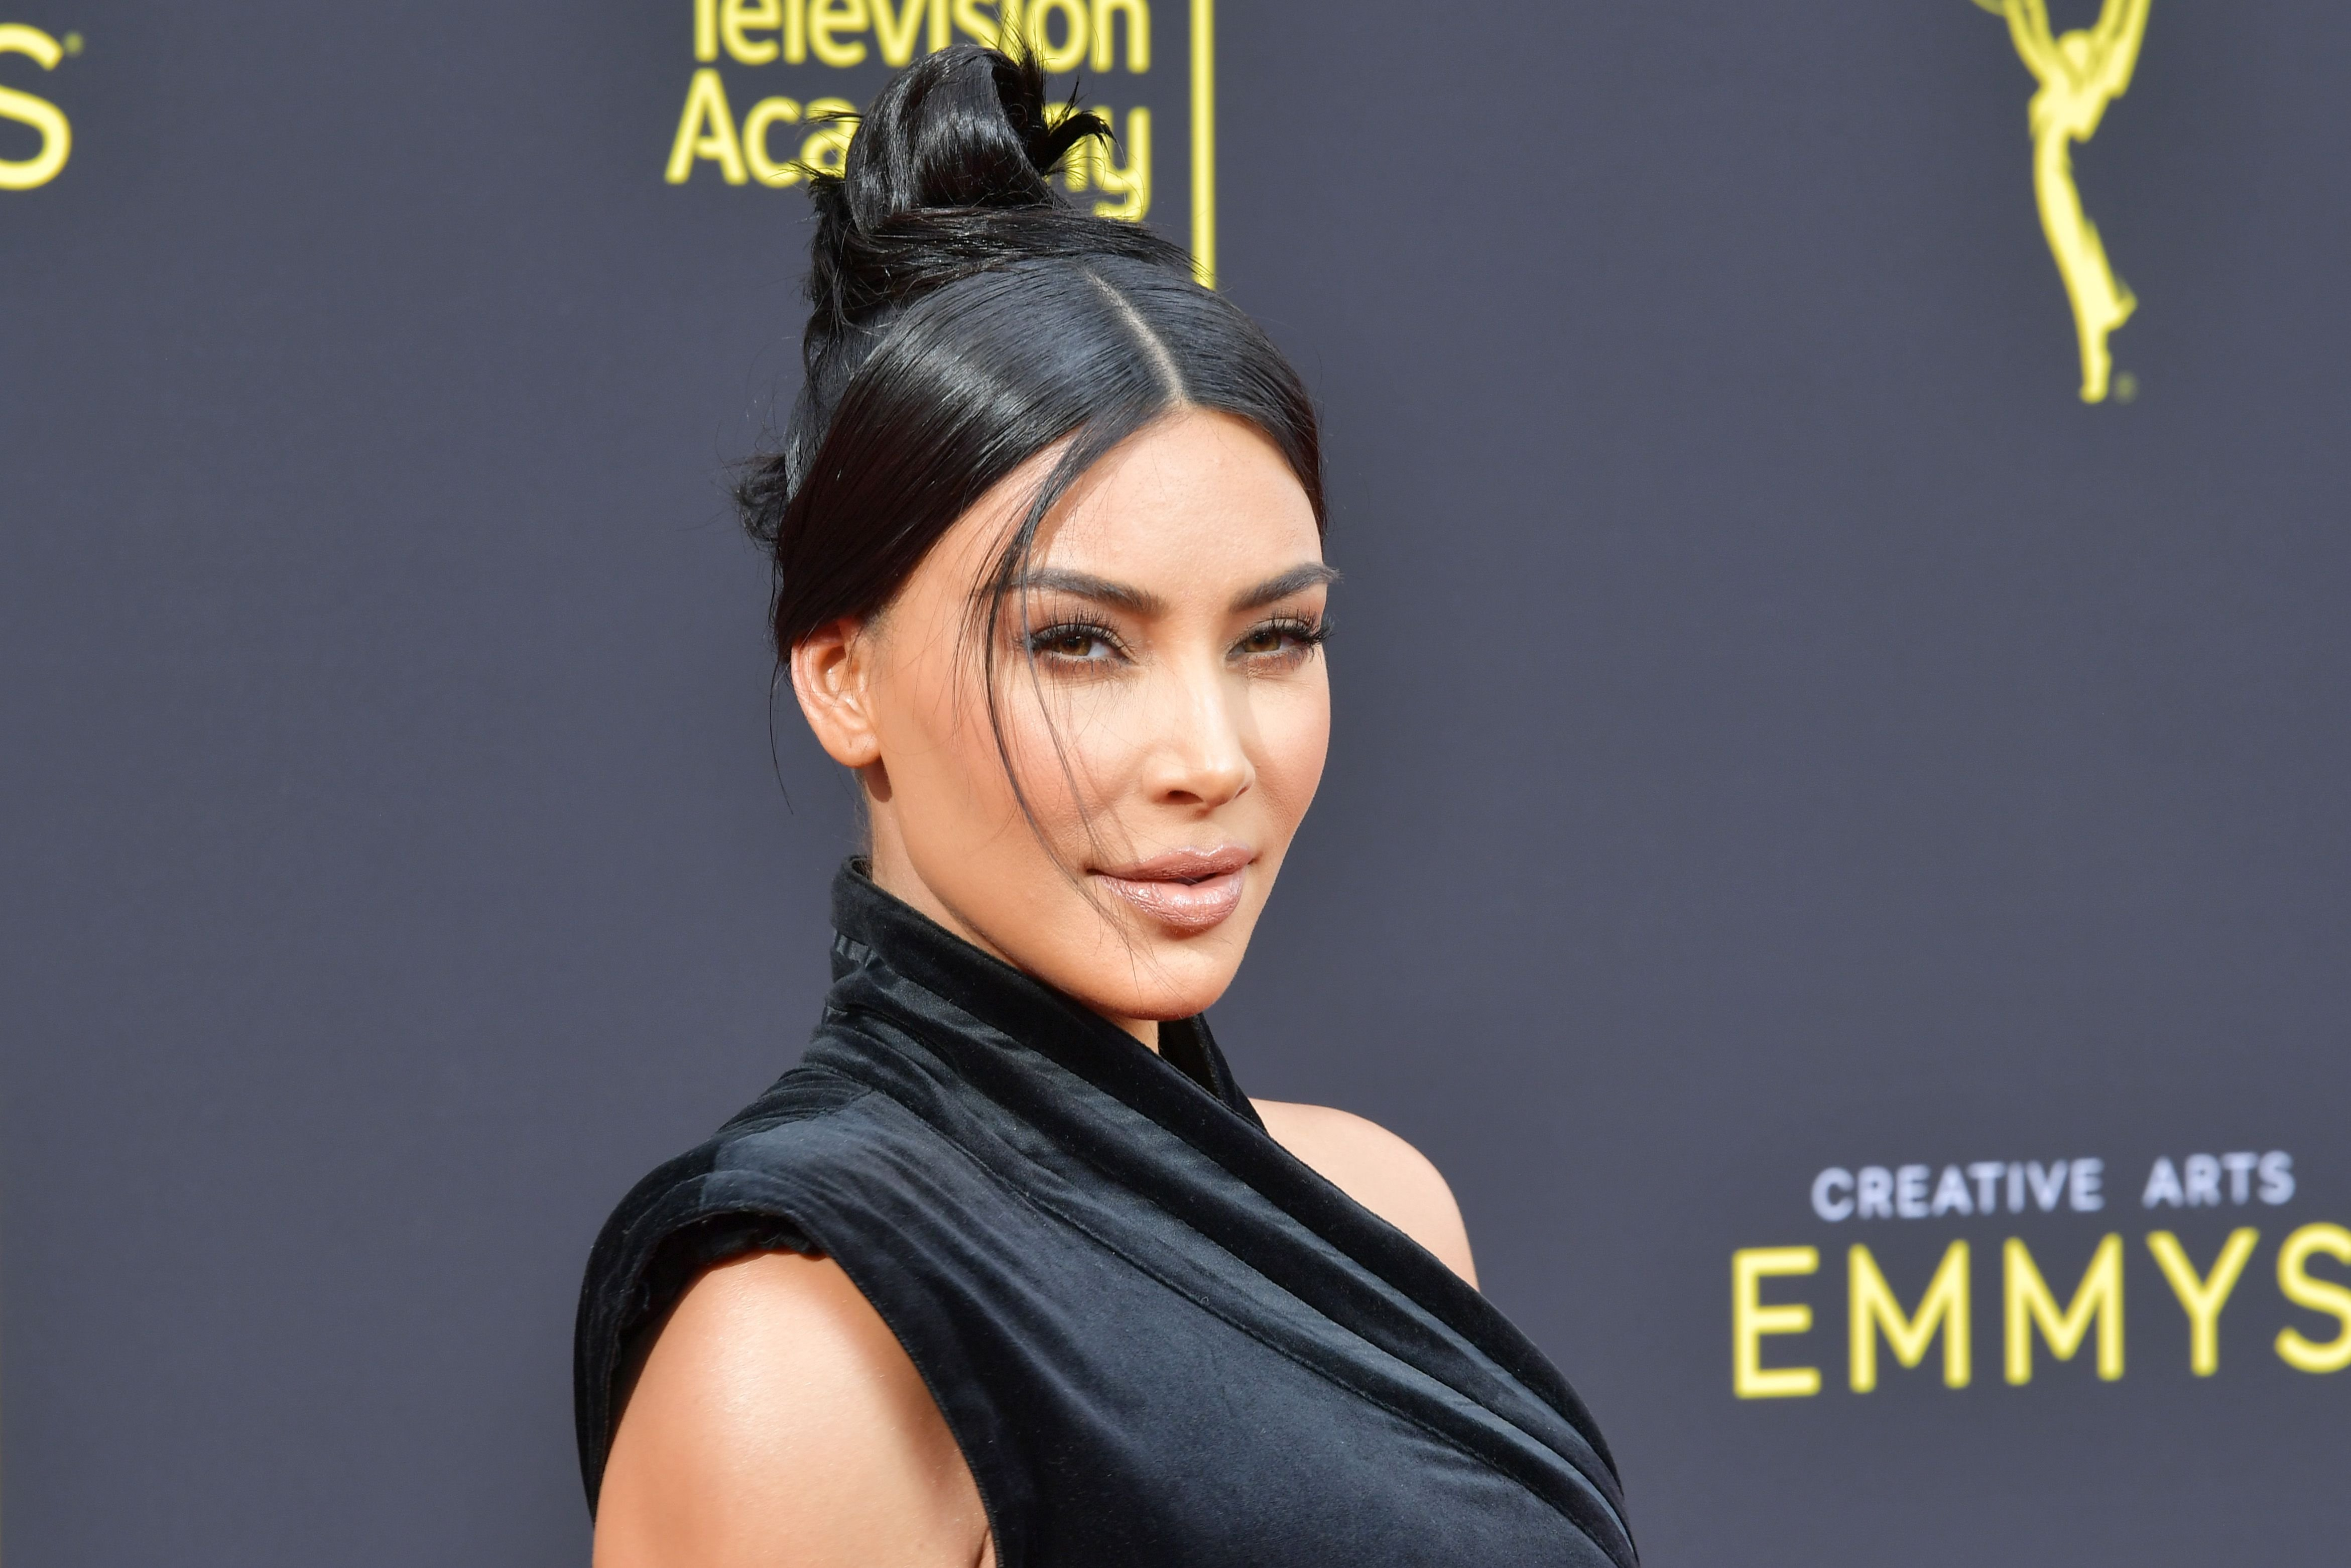 Kim Kardashian at the Creative Arts Emmy Awards on September 14, 2019 / Getty Images